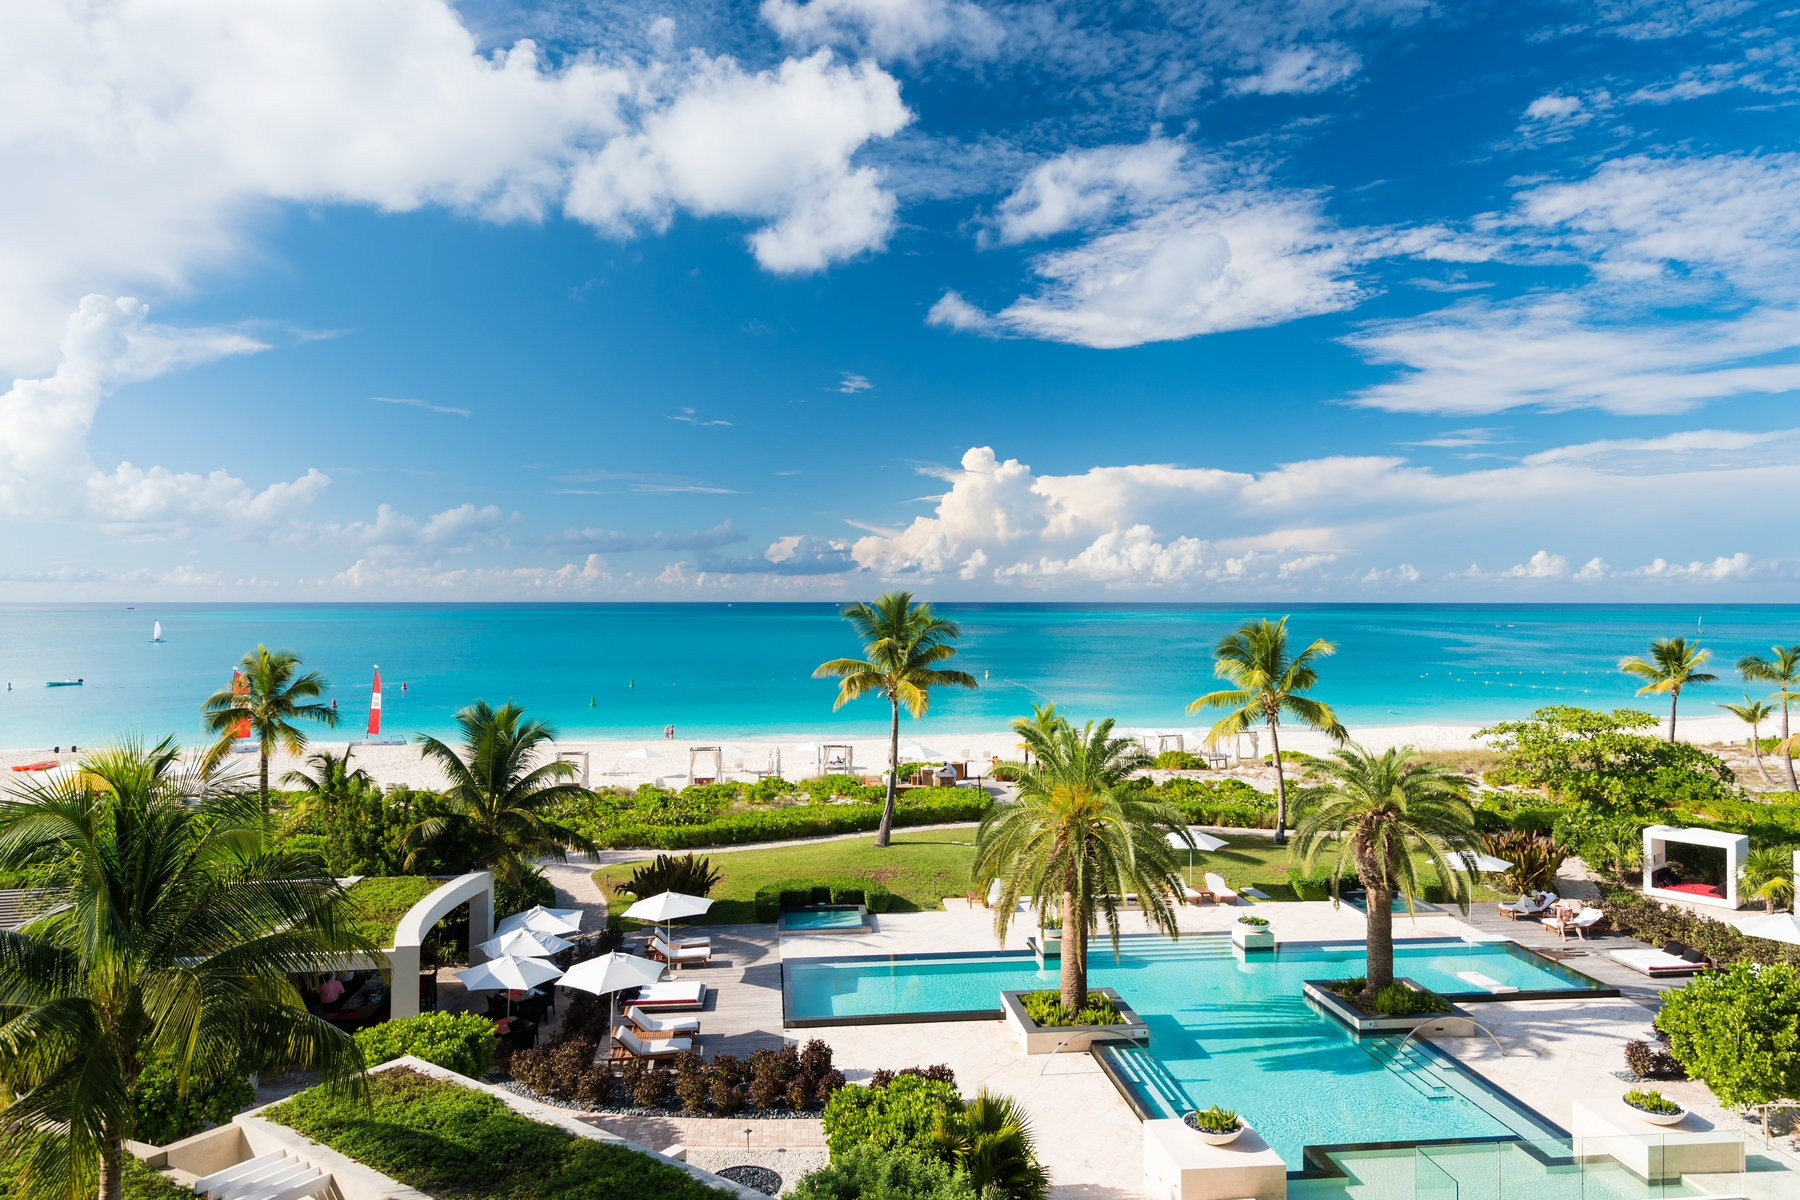 Condominium for Sale at The Estate at Grace Bay Club F304 Grace Bay Resorts, Grace Bay, Providenciales Turks And Caicos Islands